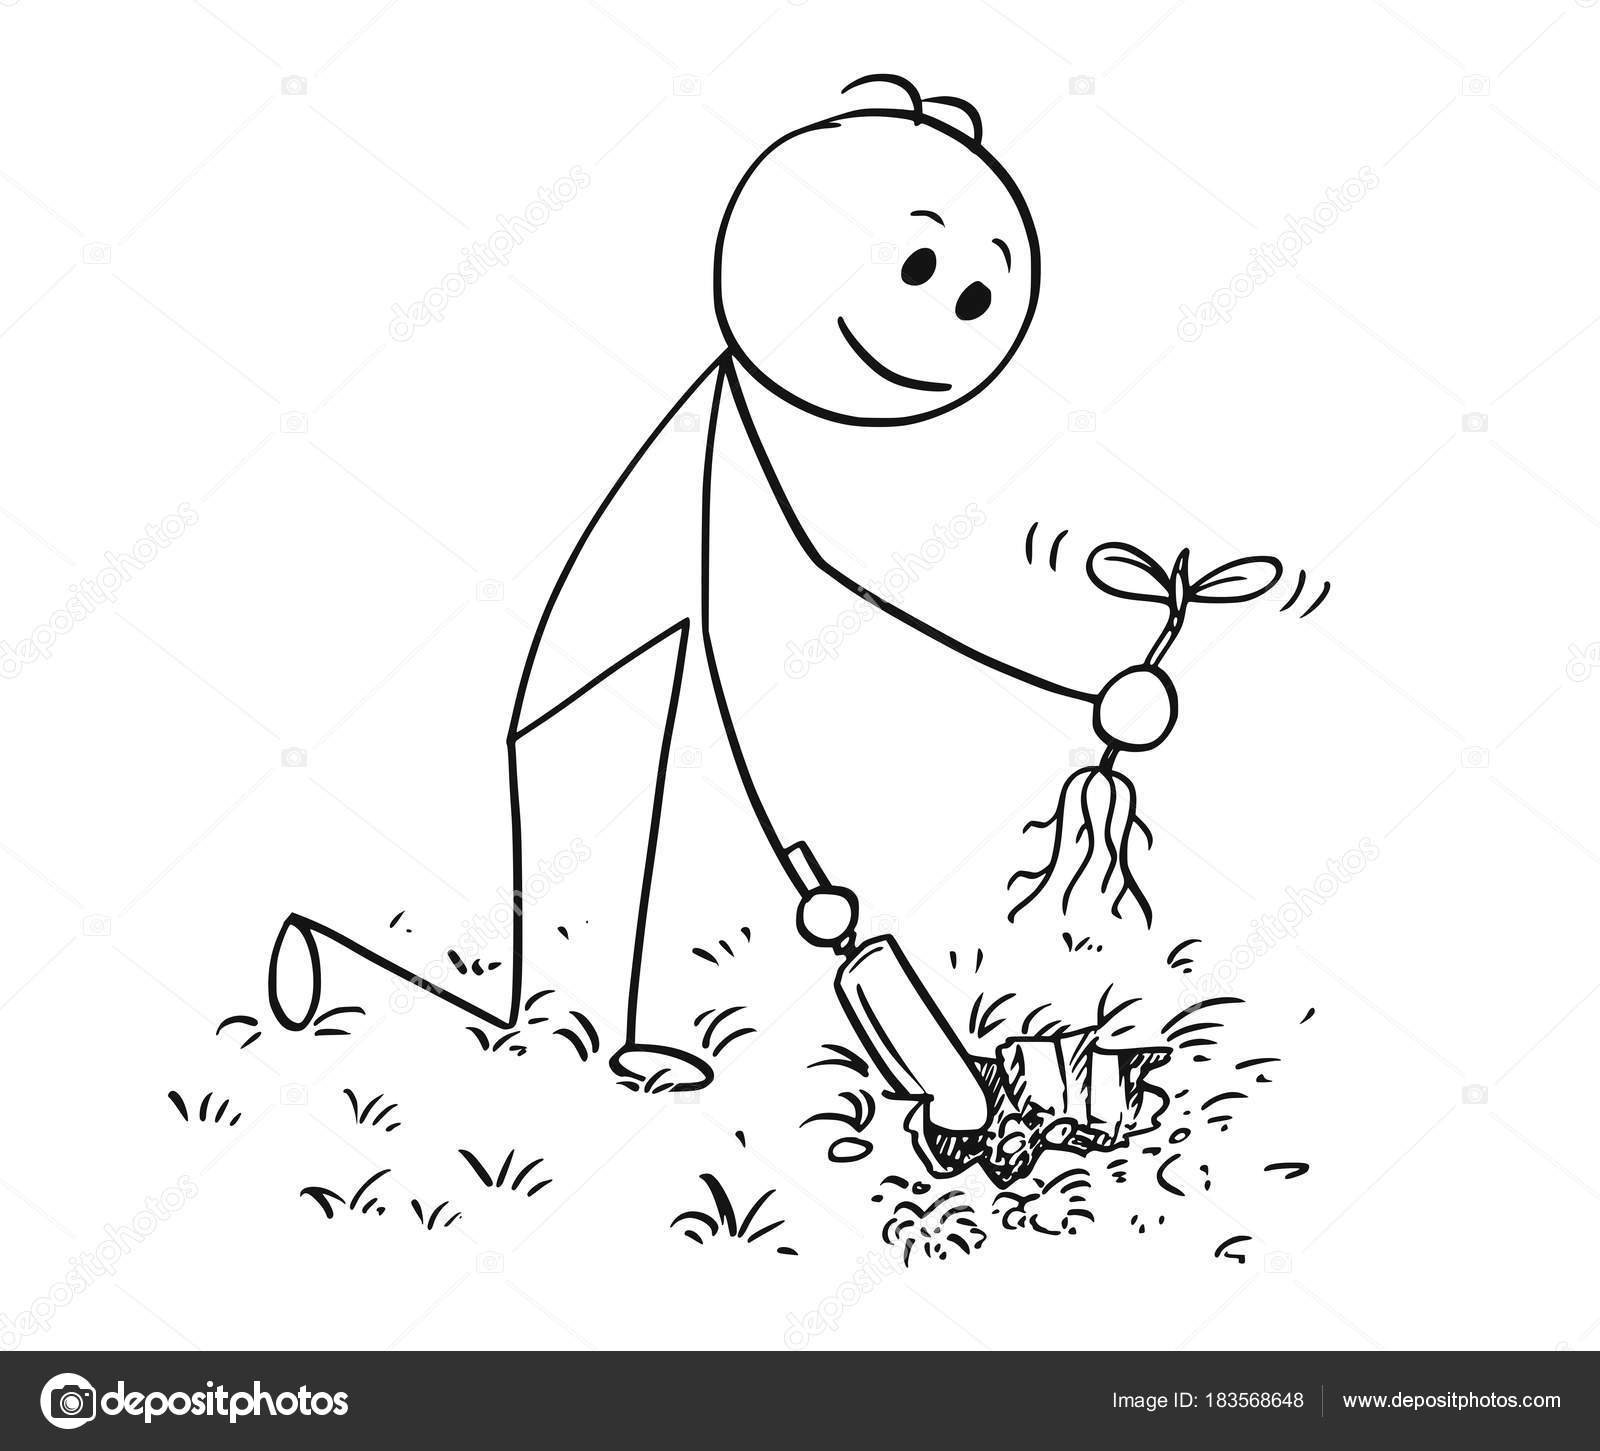 depositphotos_183568648-stock-illustration-cartoon-of-gardener-digging-a.jpg